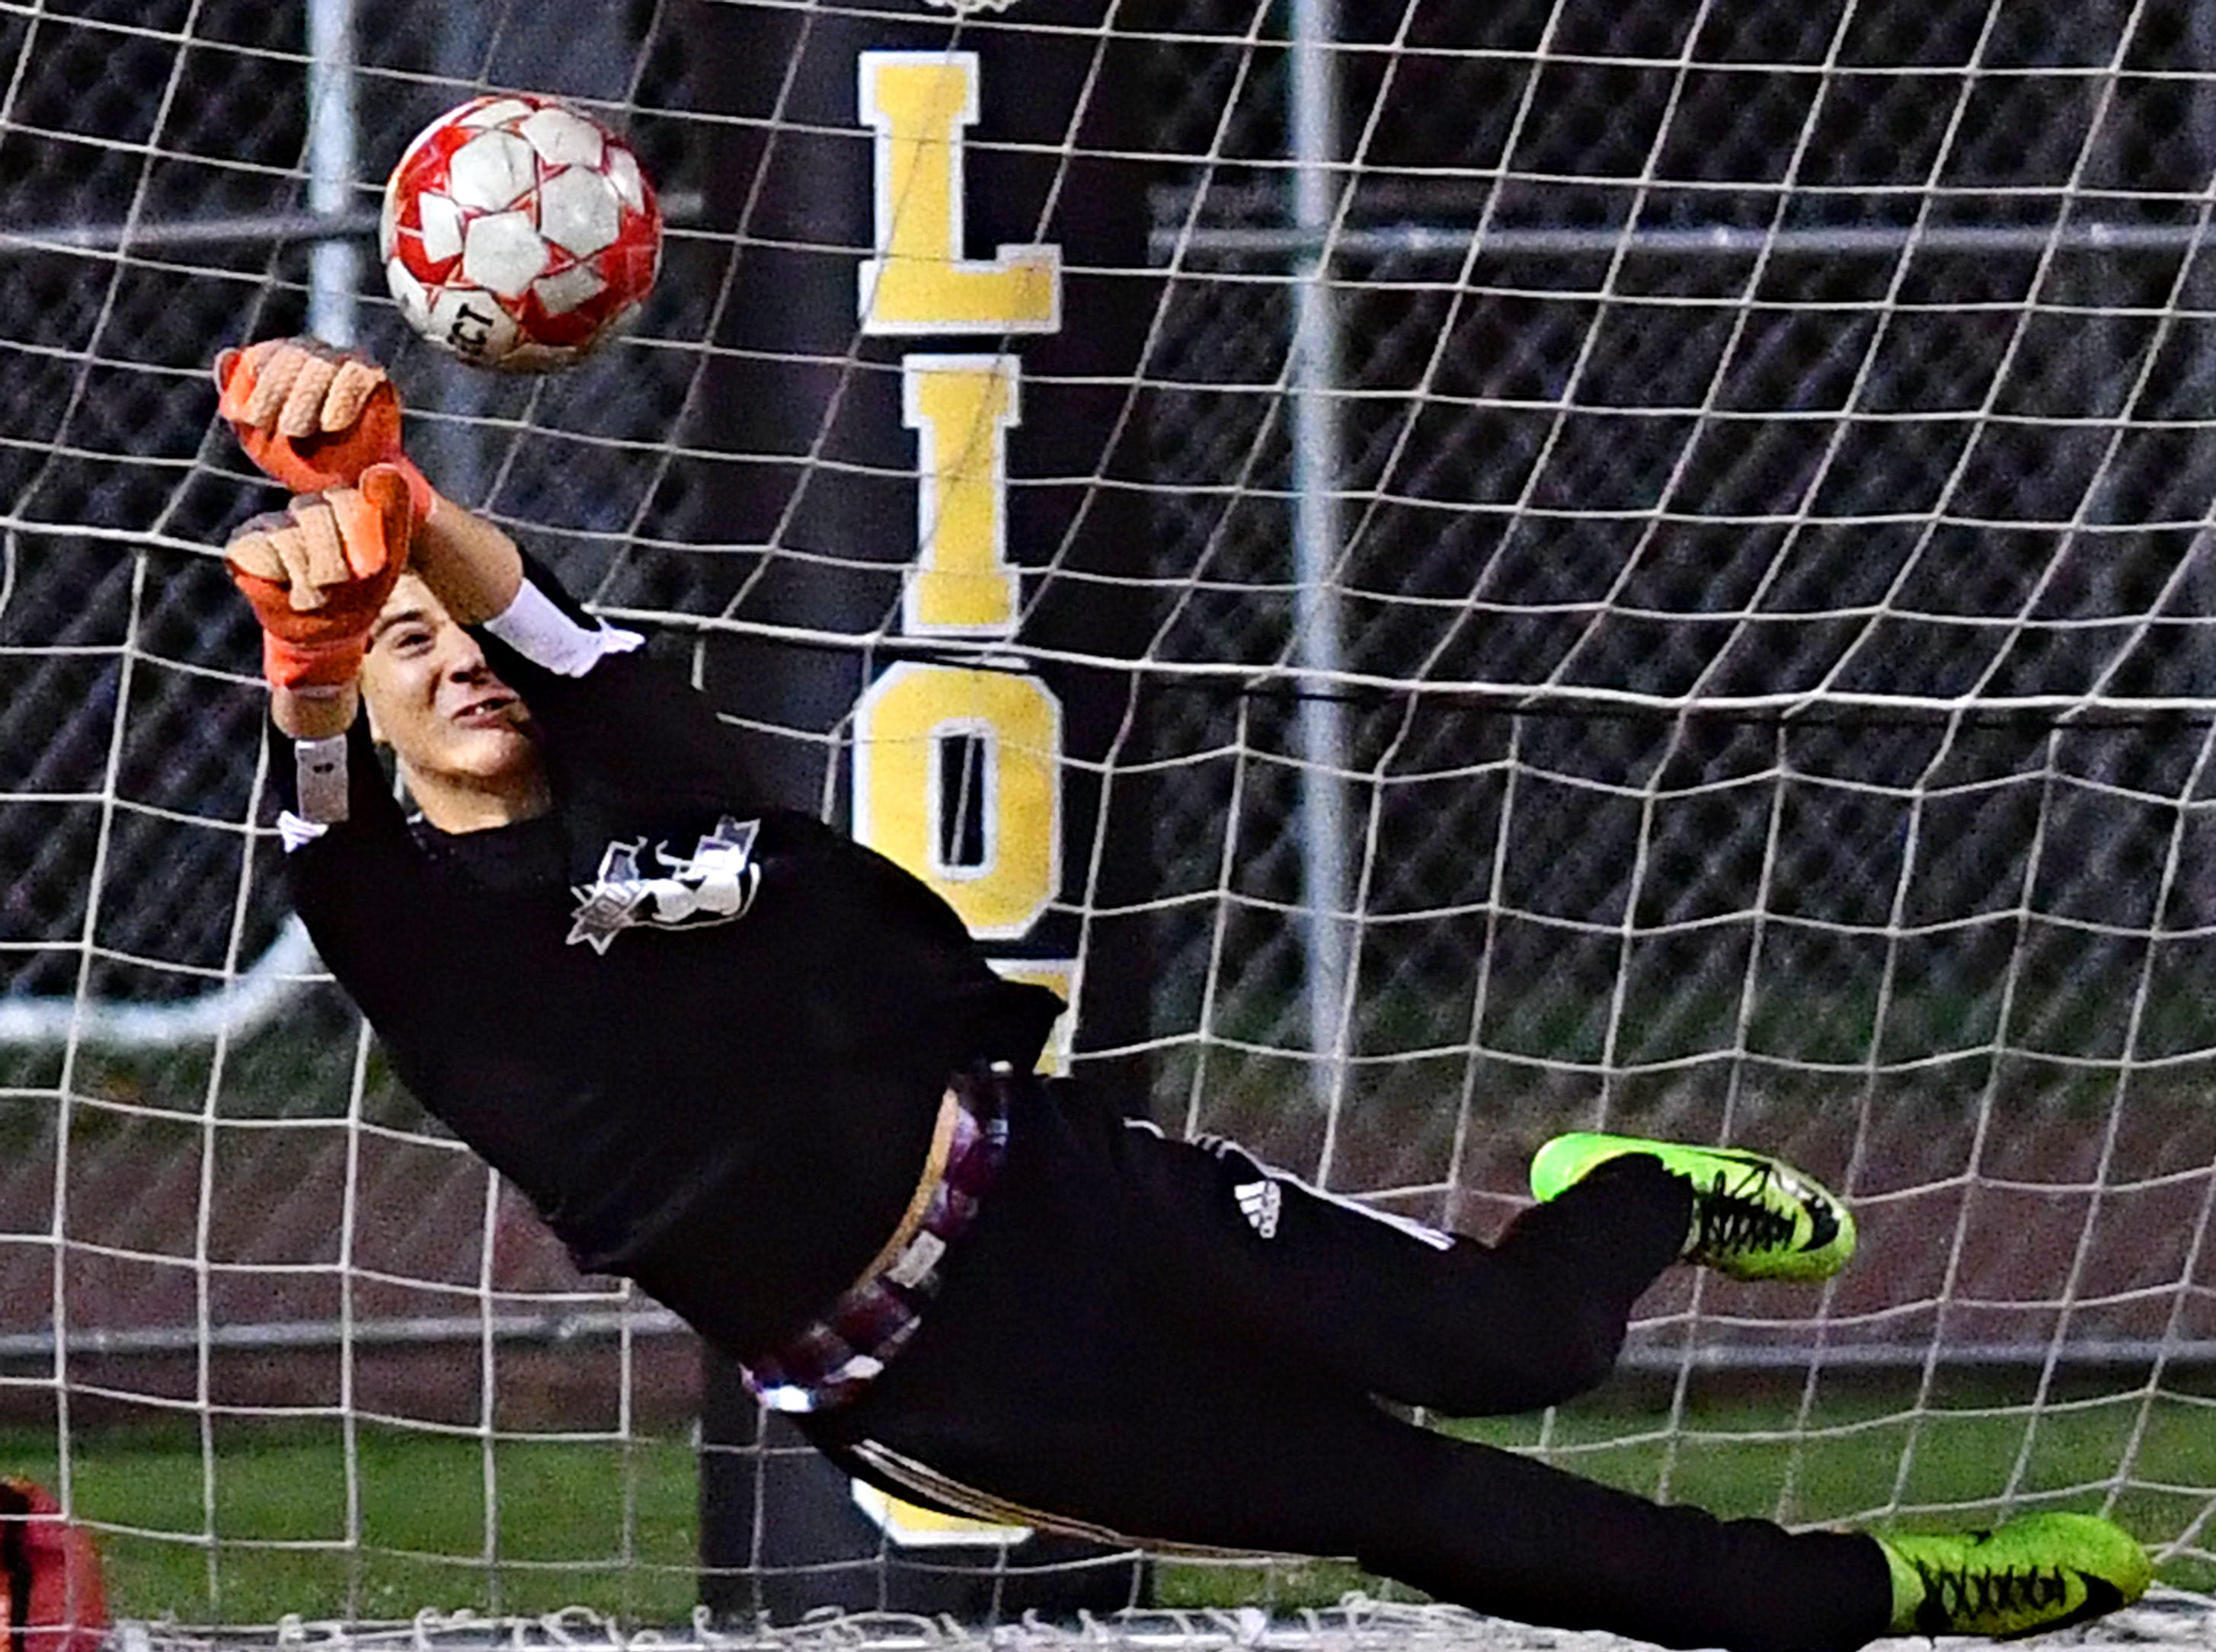 South Western's Joe Stevenson stops the ball as athletes compete during the YAIAA Boys' Soccer Senior All Star Game action at Horn Field in Red Lion, Wednesday, Nov. 7, 2018. Dawn J. Sagert photo